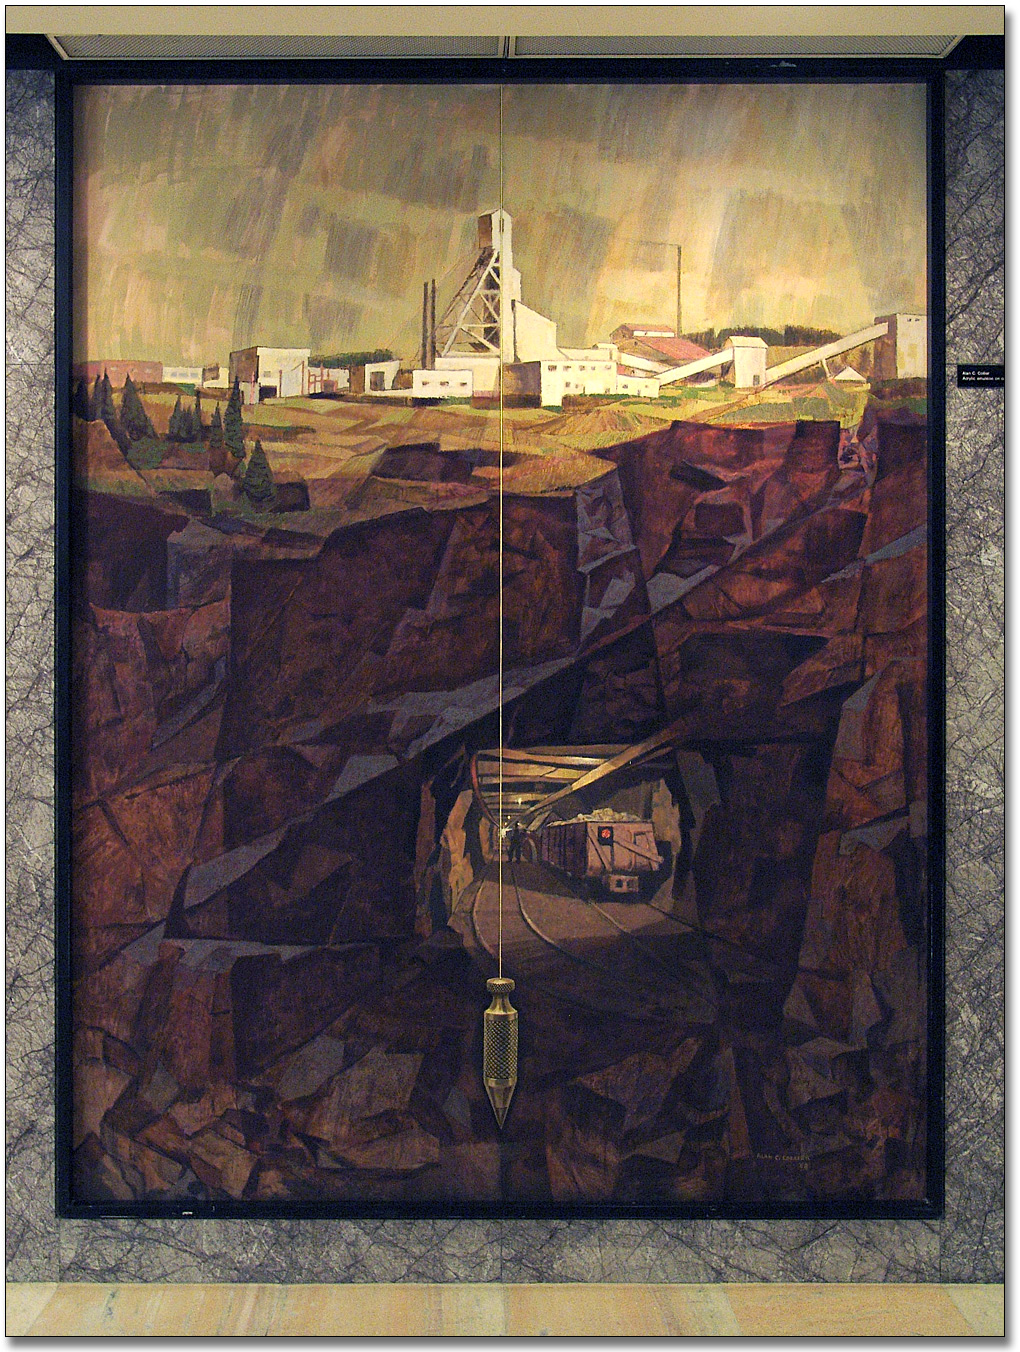 Photographie : Mining in Ontario [Les mines en Ontario], 1968 - Alan Caswell Collier